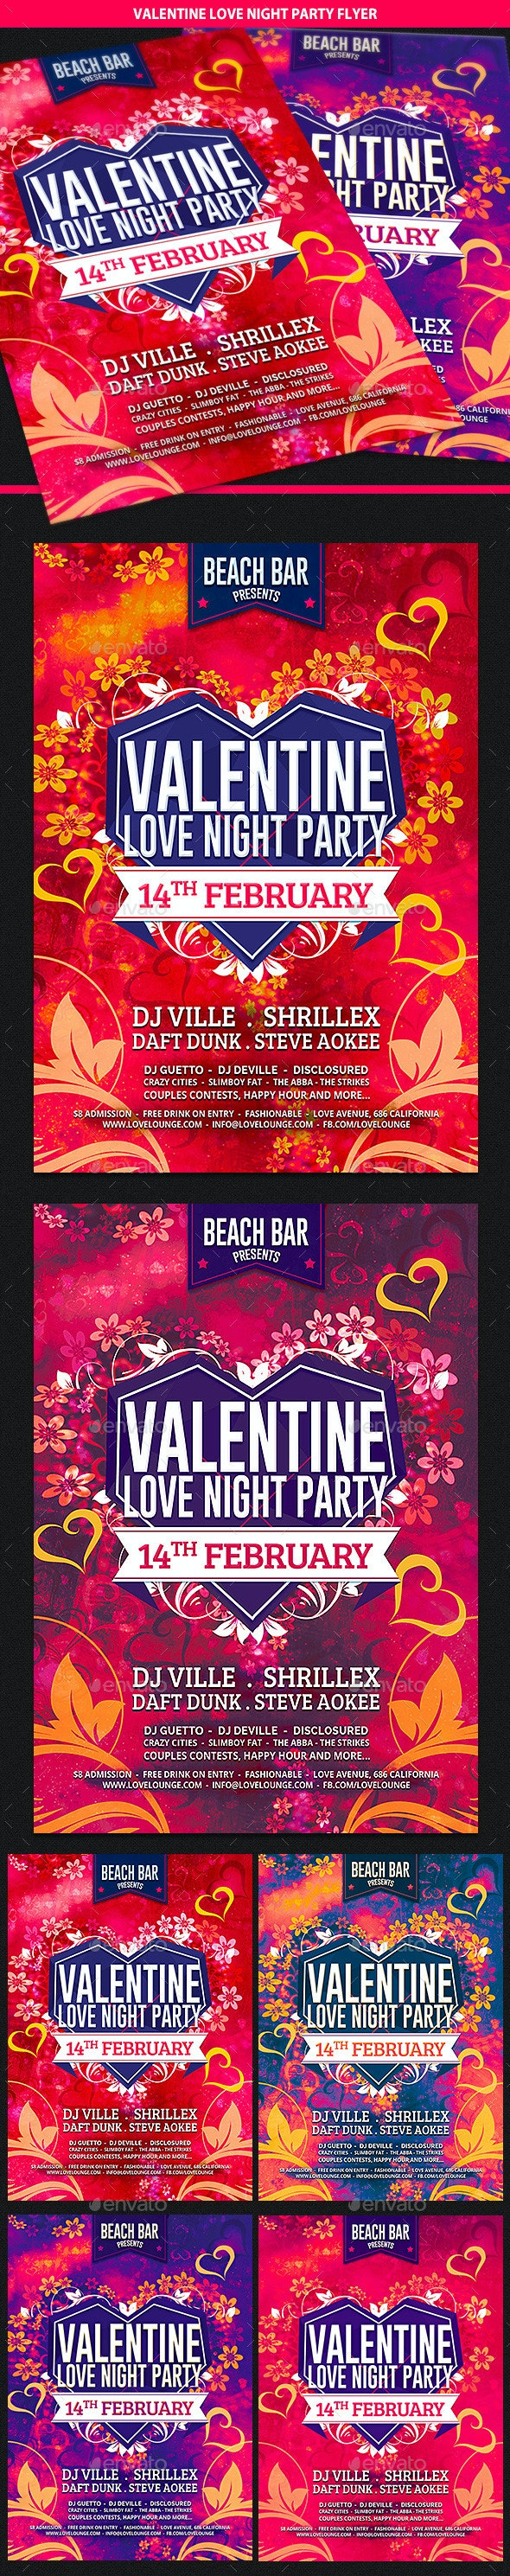 Valentine Love Night Party Flyer - Clubs & Parties Events